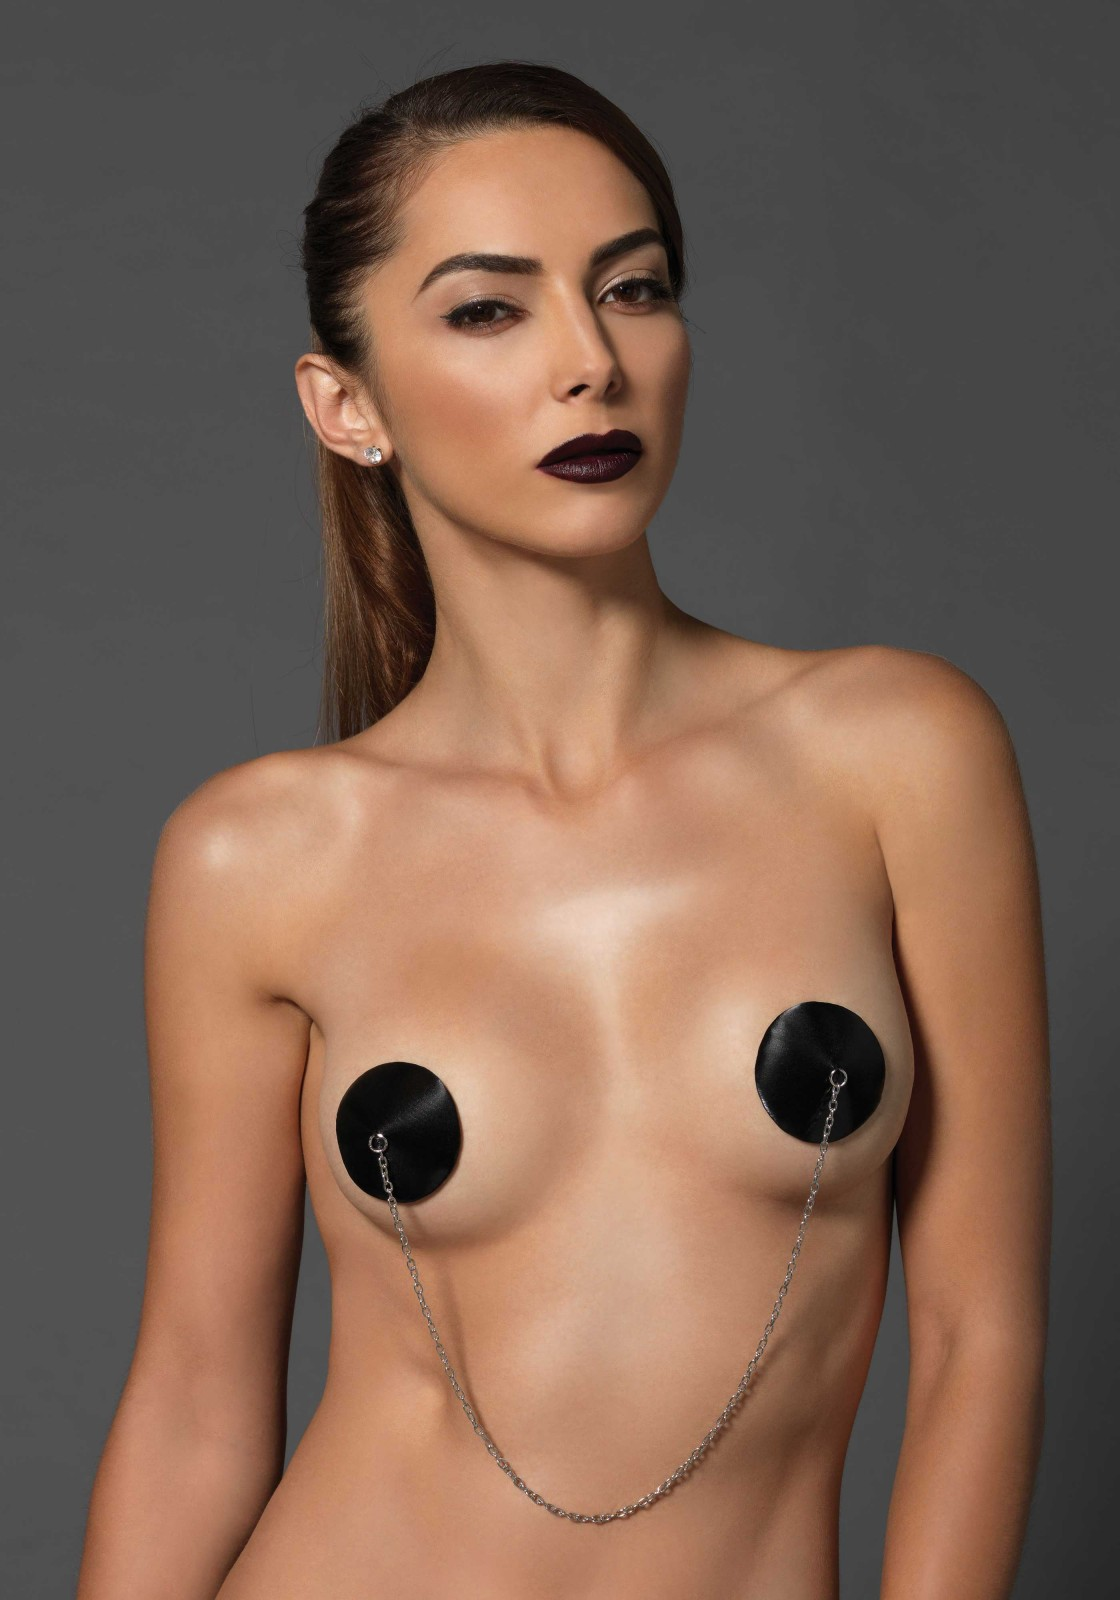 Padded satin nipple covers with connecting chain.